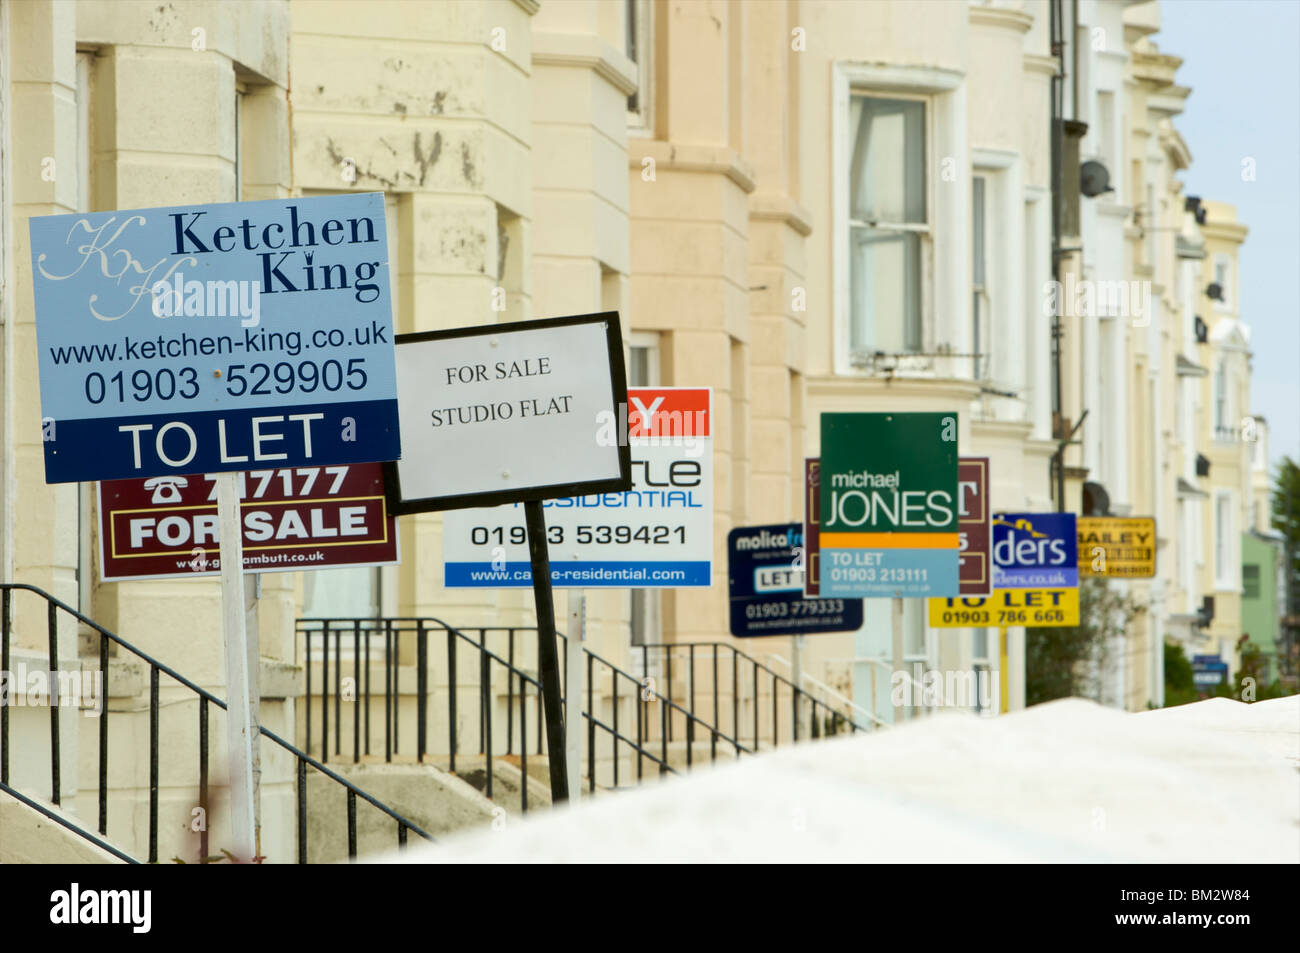 For sale and To Let signs outside houses in Littlehampton - 15 May 2010 - Stock Image